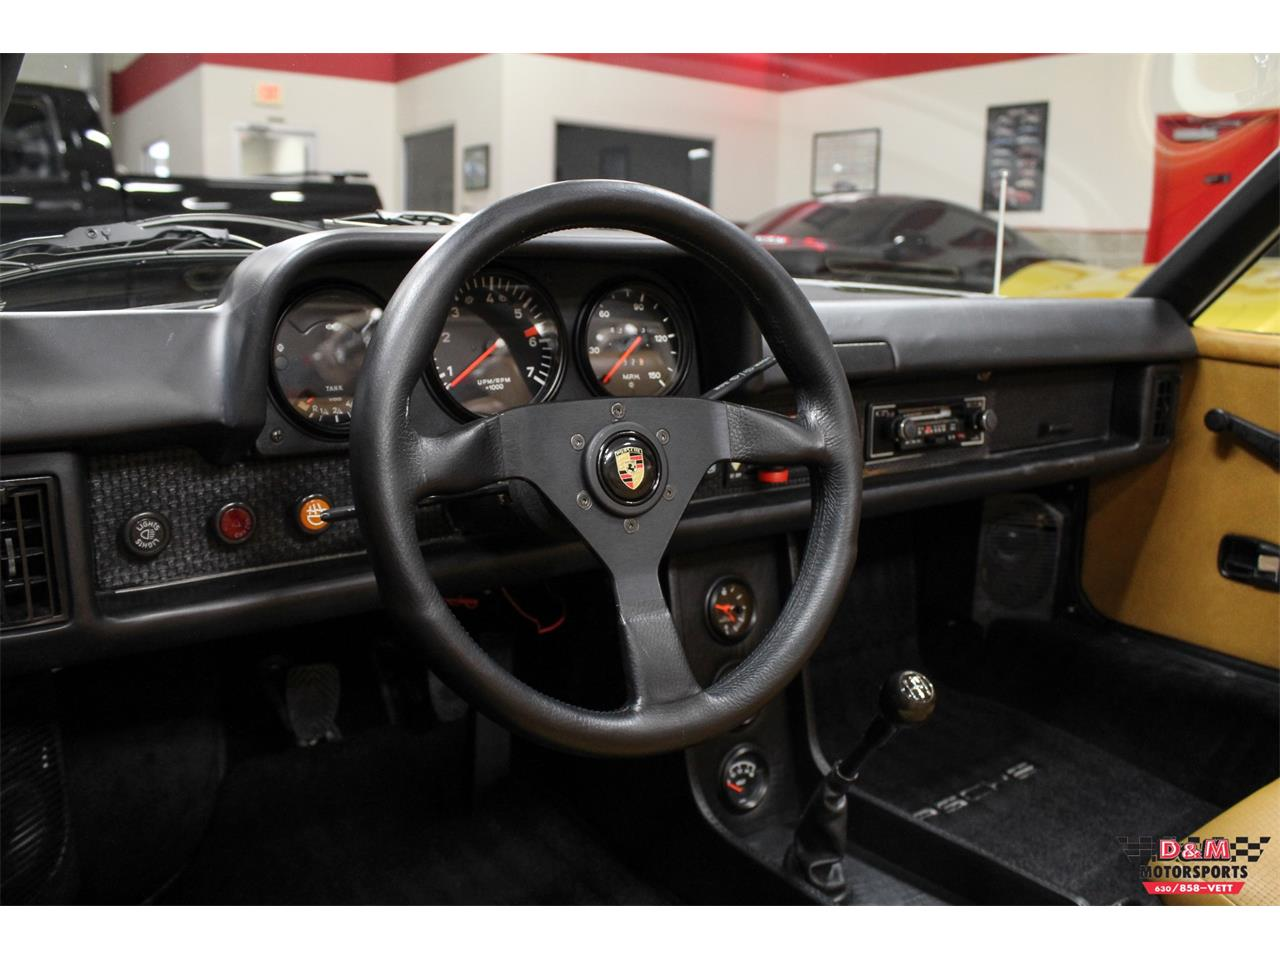 Large Picture of '76 914 located in Glen Ellyn Illinois Offered by D & M Motorsports - P8QY